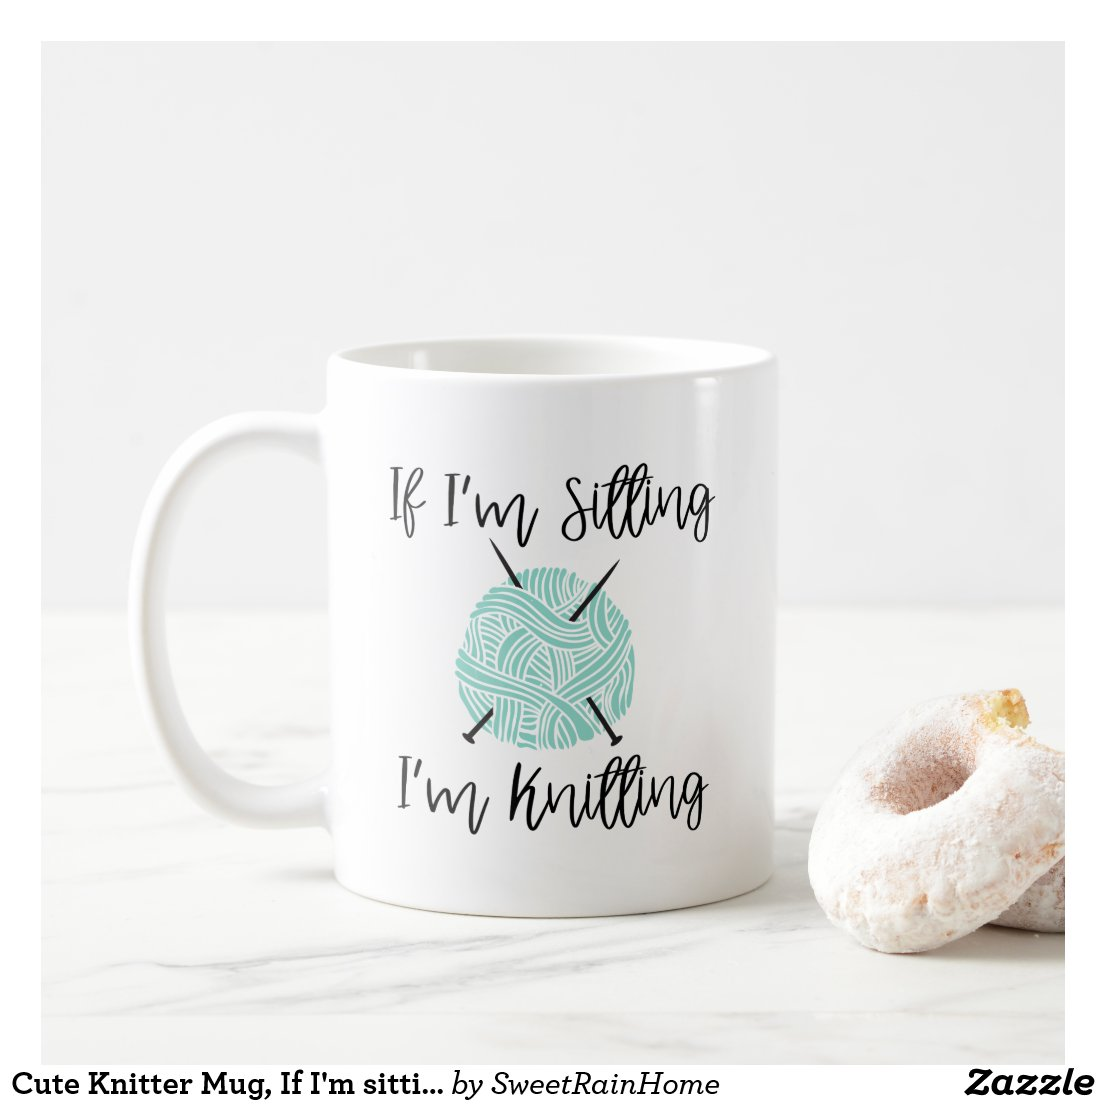 Cute Knitter Mug, If I'm sitting I'm knitting Gift Coffee Mug